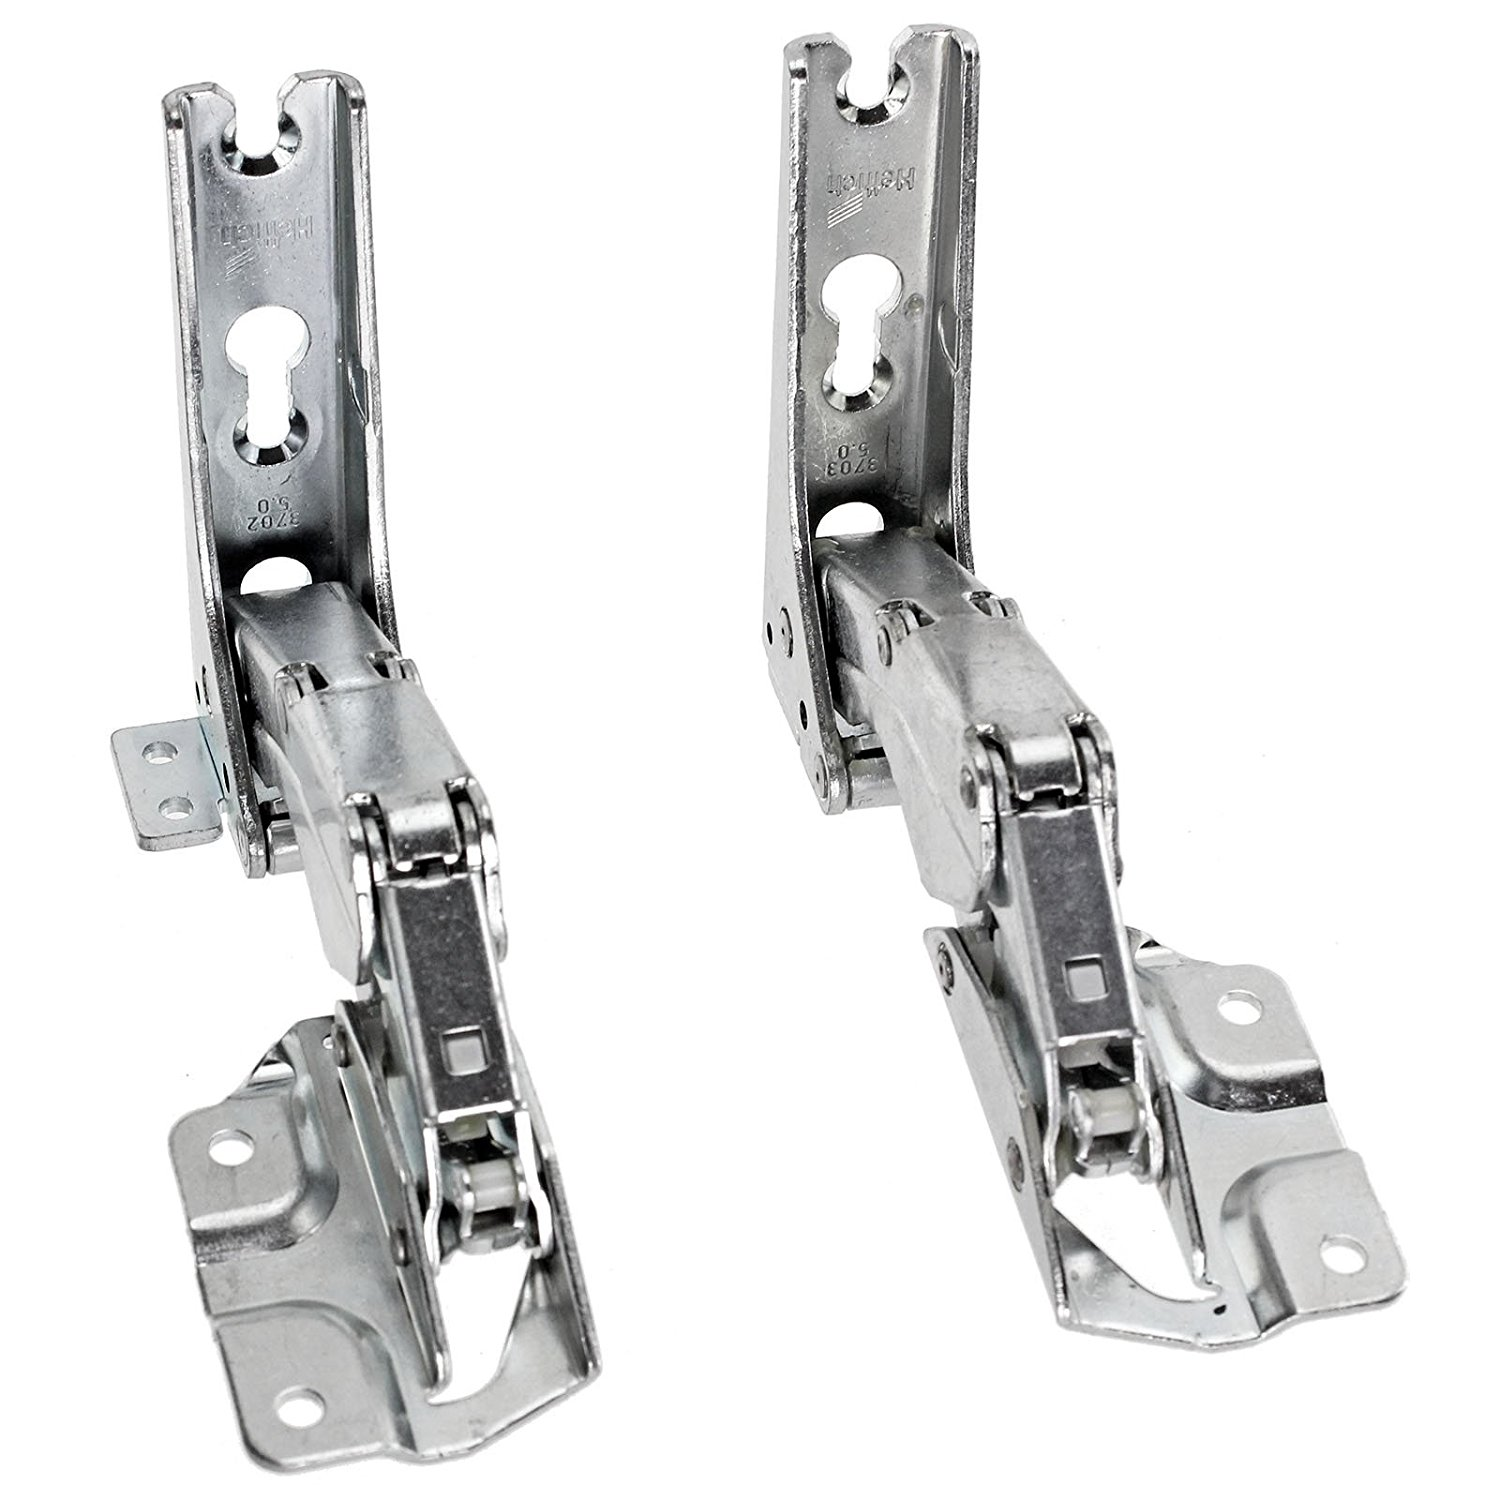 FRIDGE FREEZER DOOR HINGE, LEFT & RIGHT HINGES PAIR. AEG   2211202045/ 2211201047. Malta, 								Fridge Malta, Polar Services LTD Malta Malta